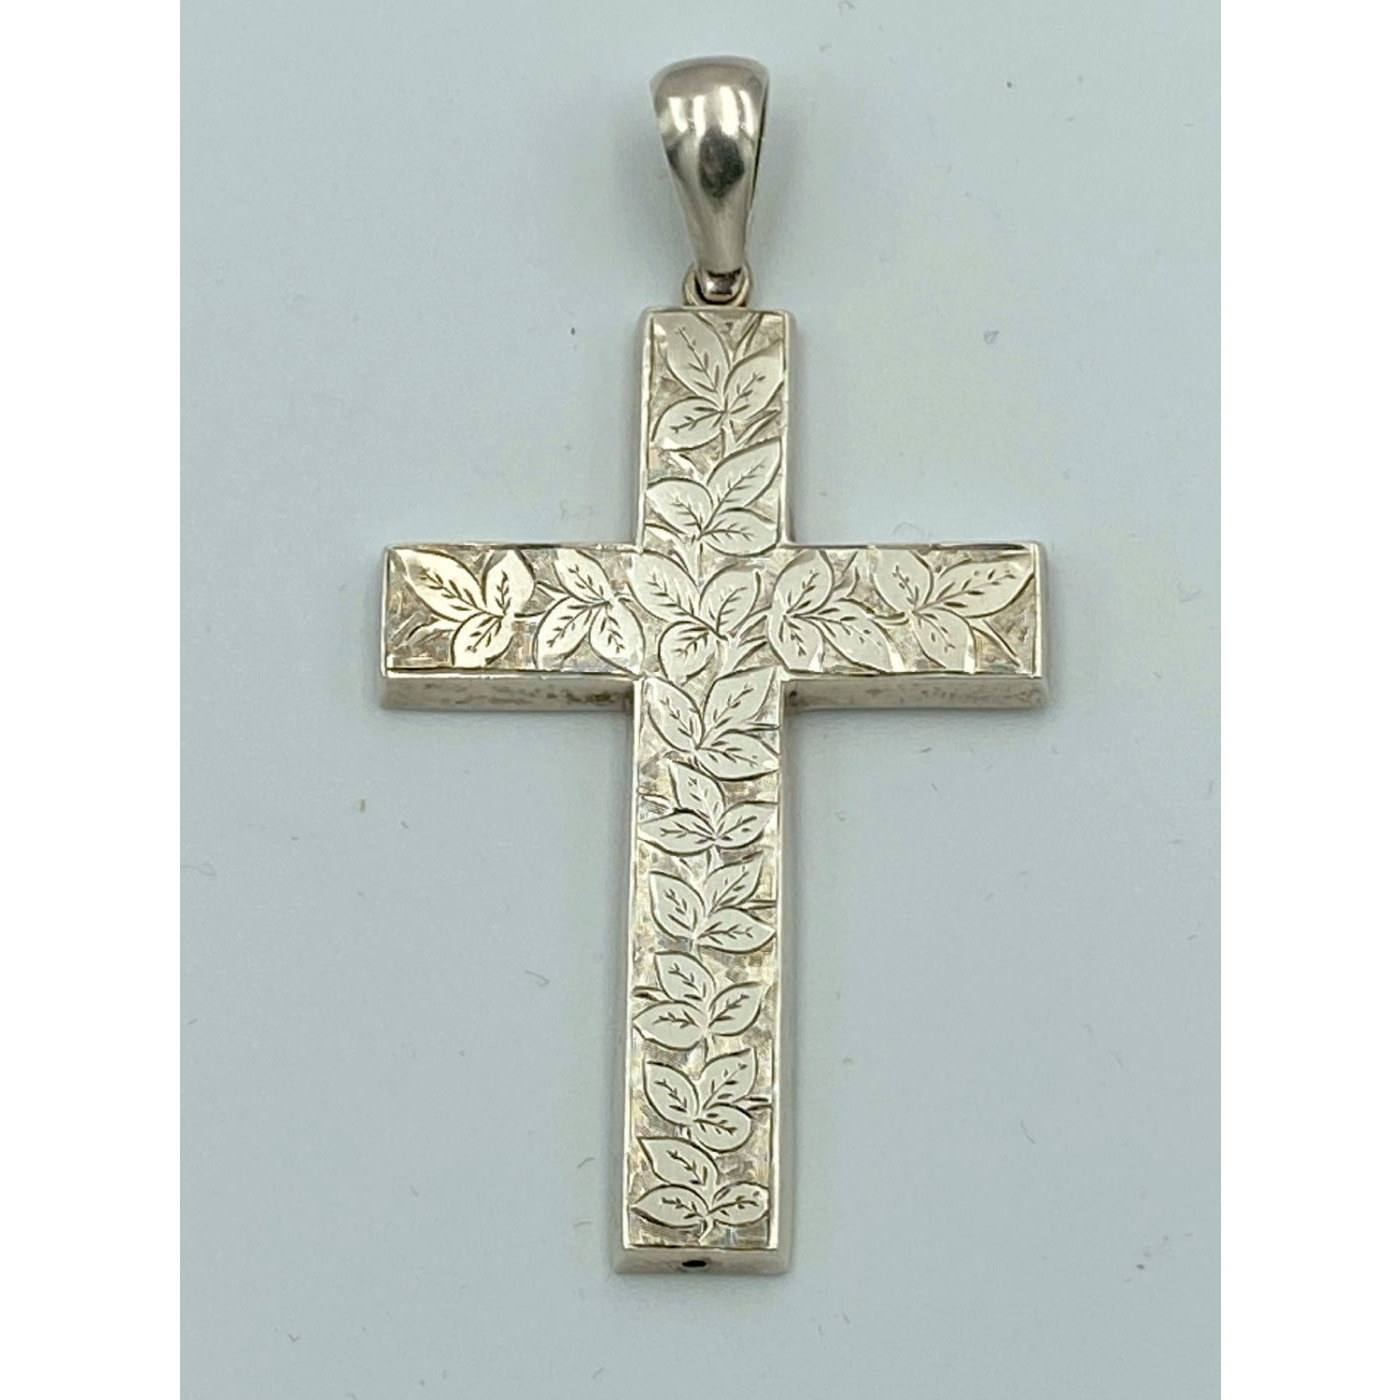 Early Heavily Adorned Ivy Silver Cross Pendant